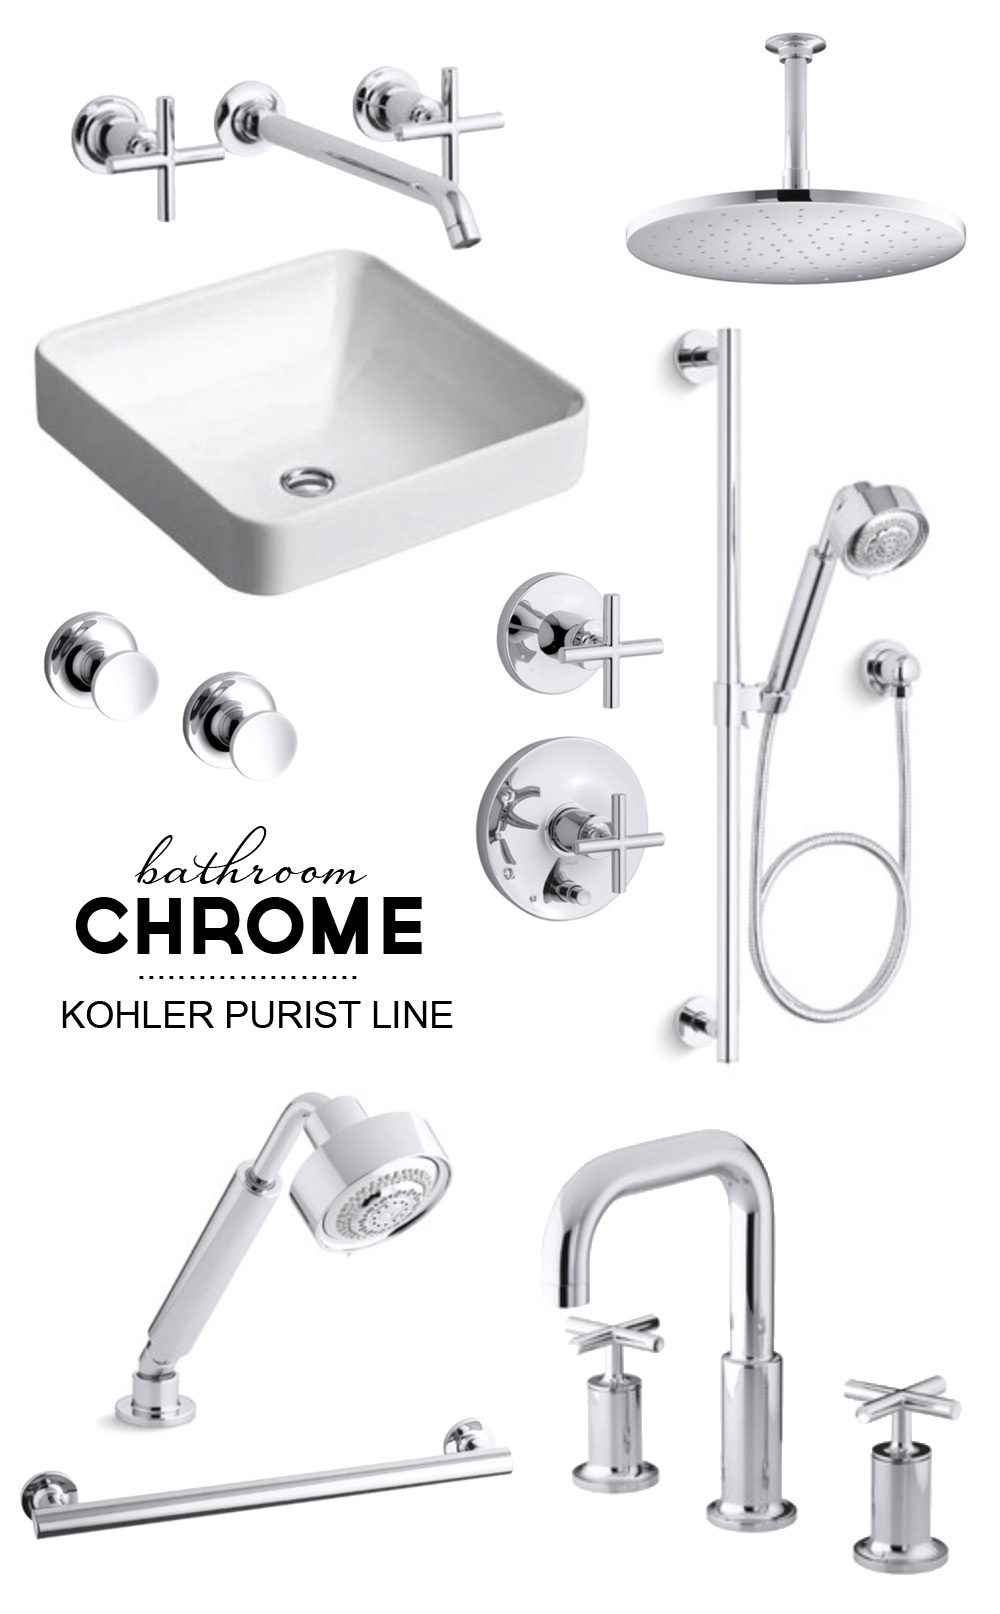 Master Bathroom Inspiration Board: Chrome | Purist by Kohler | PepperDesignBlog.com